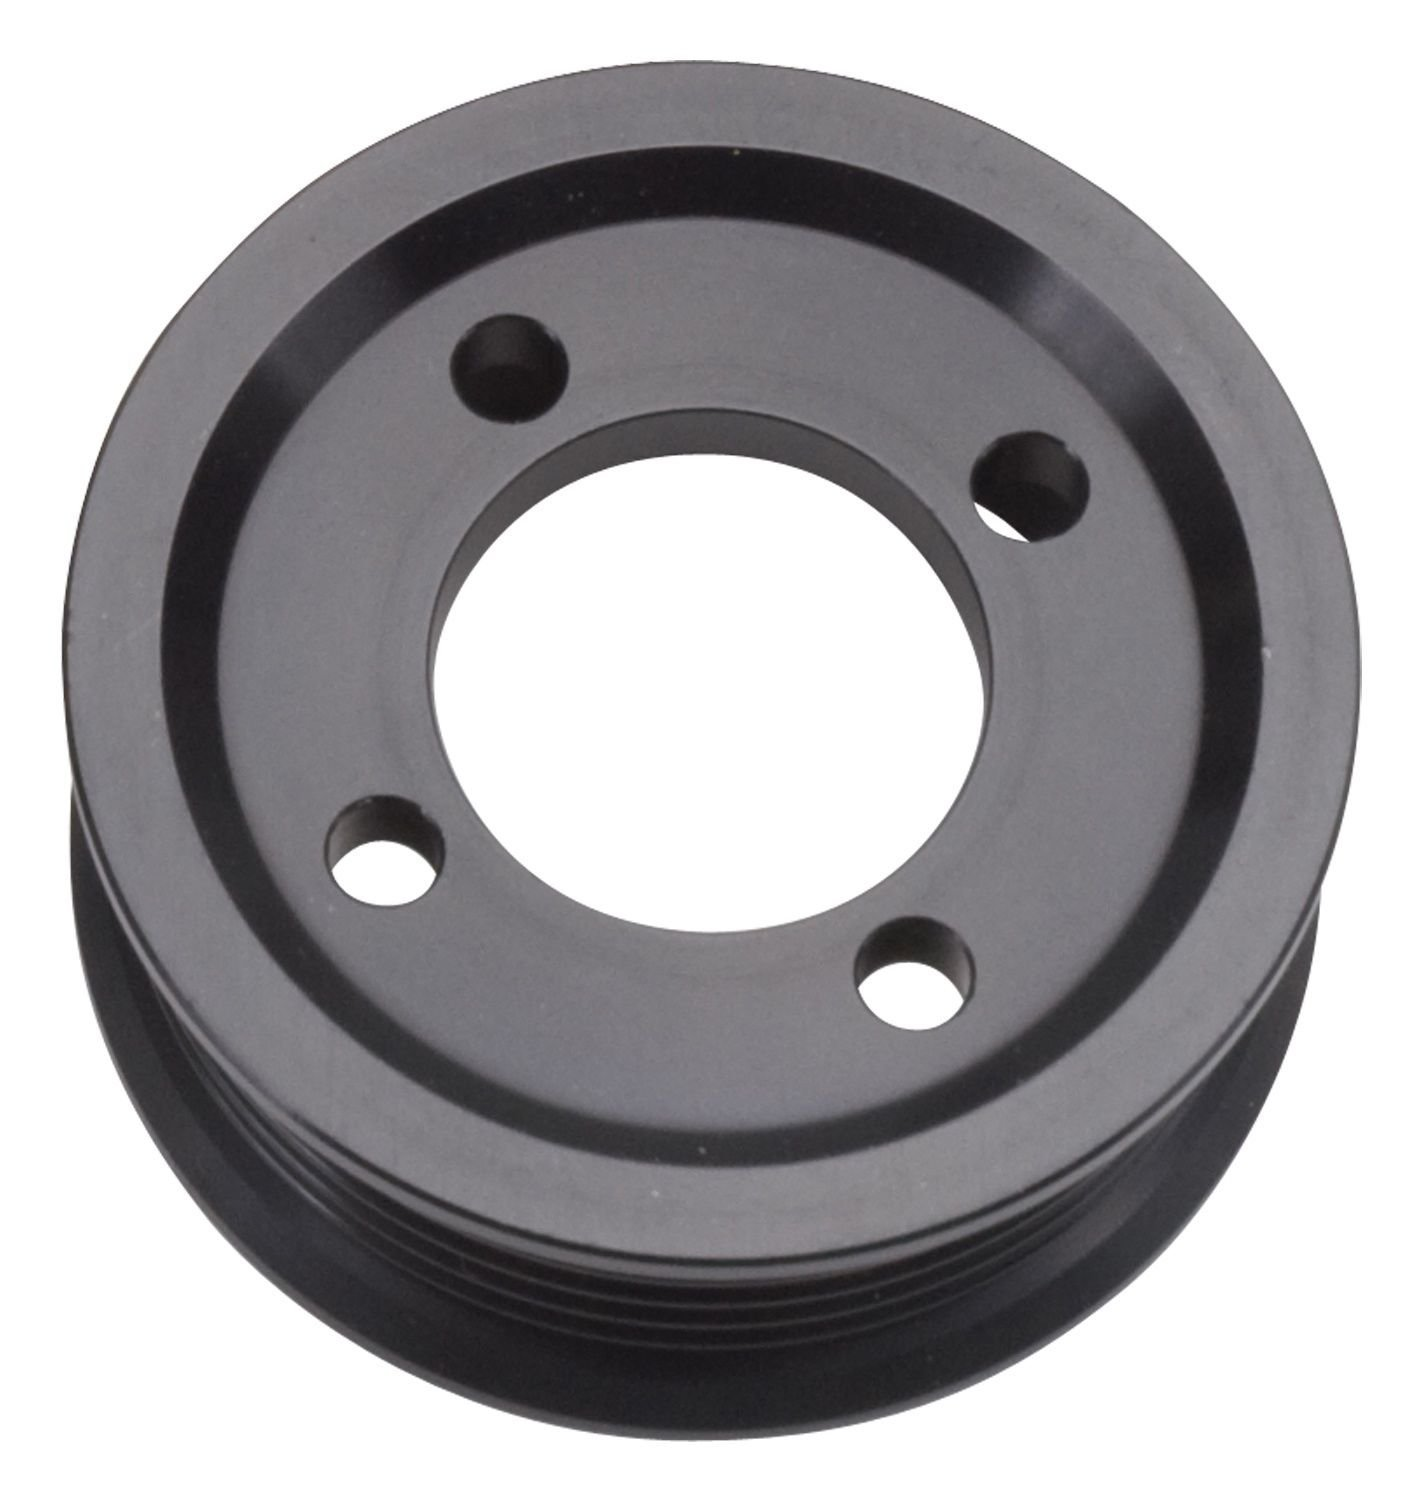 Cheap Whipple Supercharger Pulley, find Whipple Supercharger